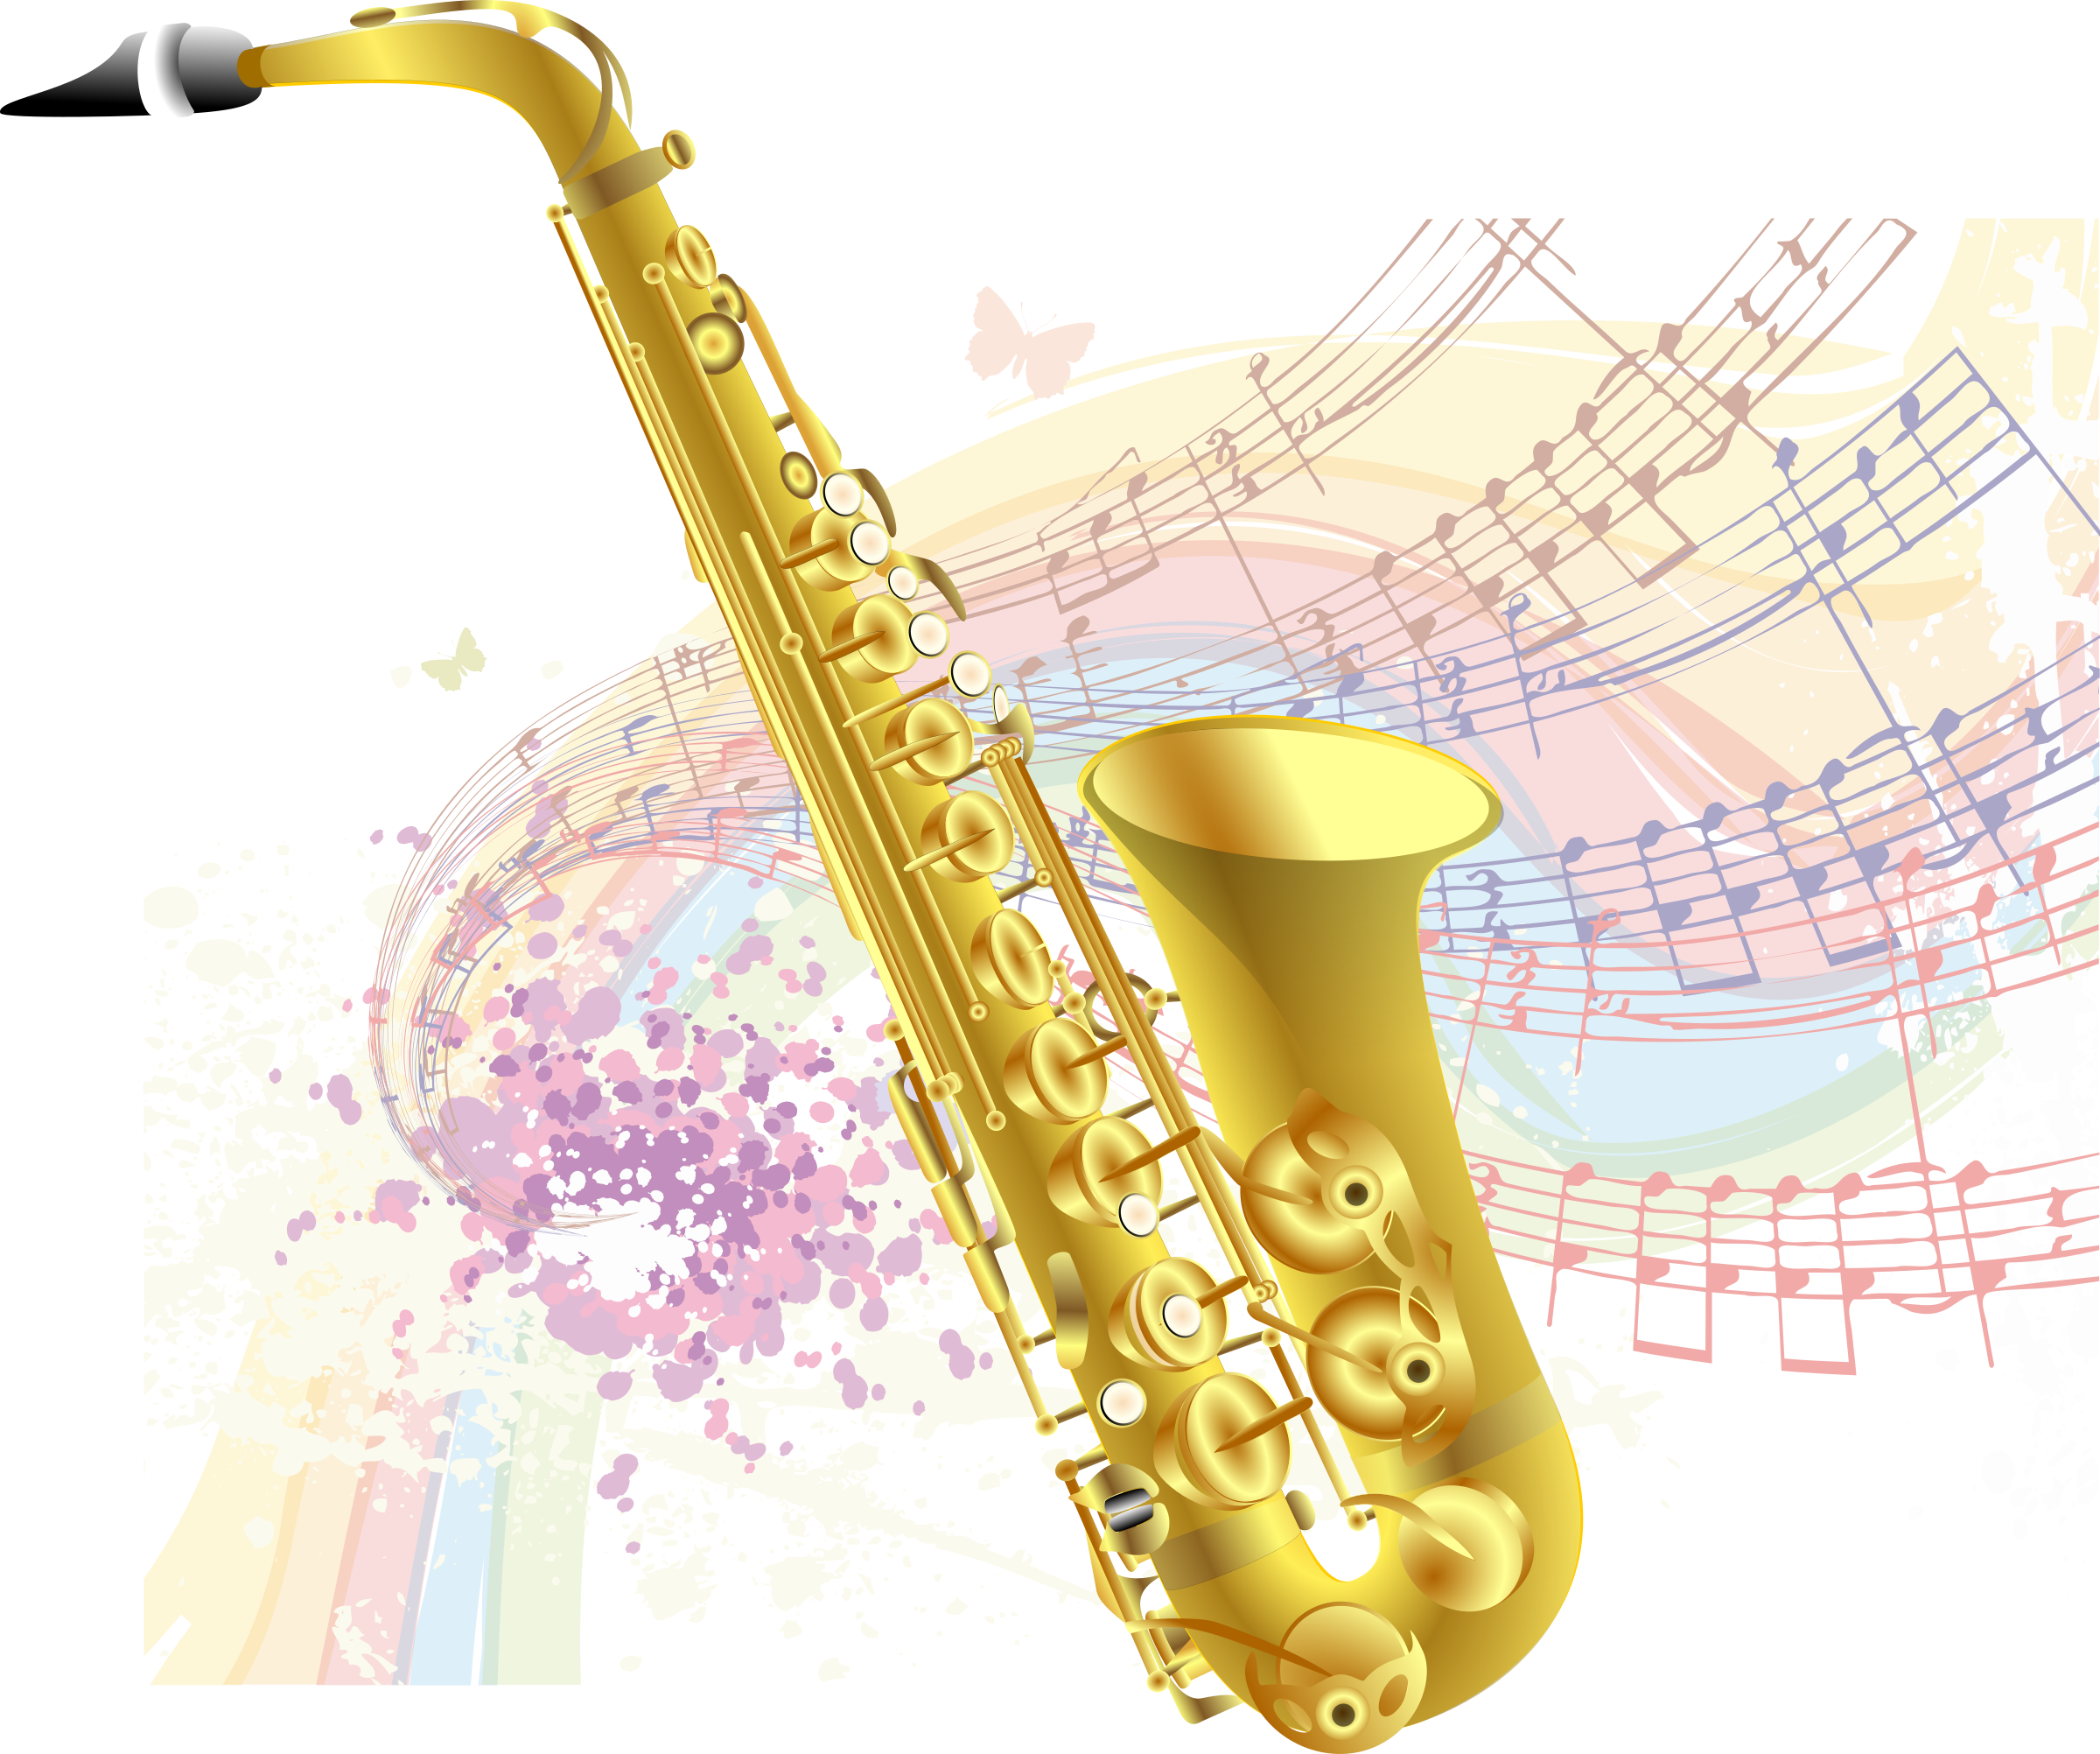 Clarinet clipart small. Saxophone with music background